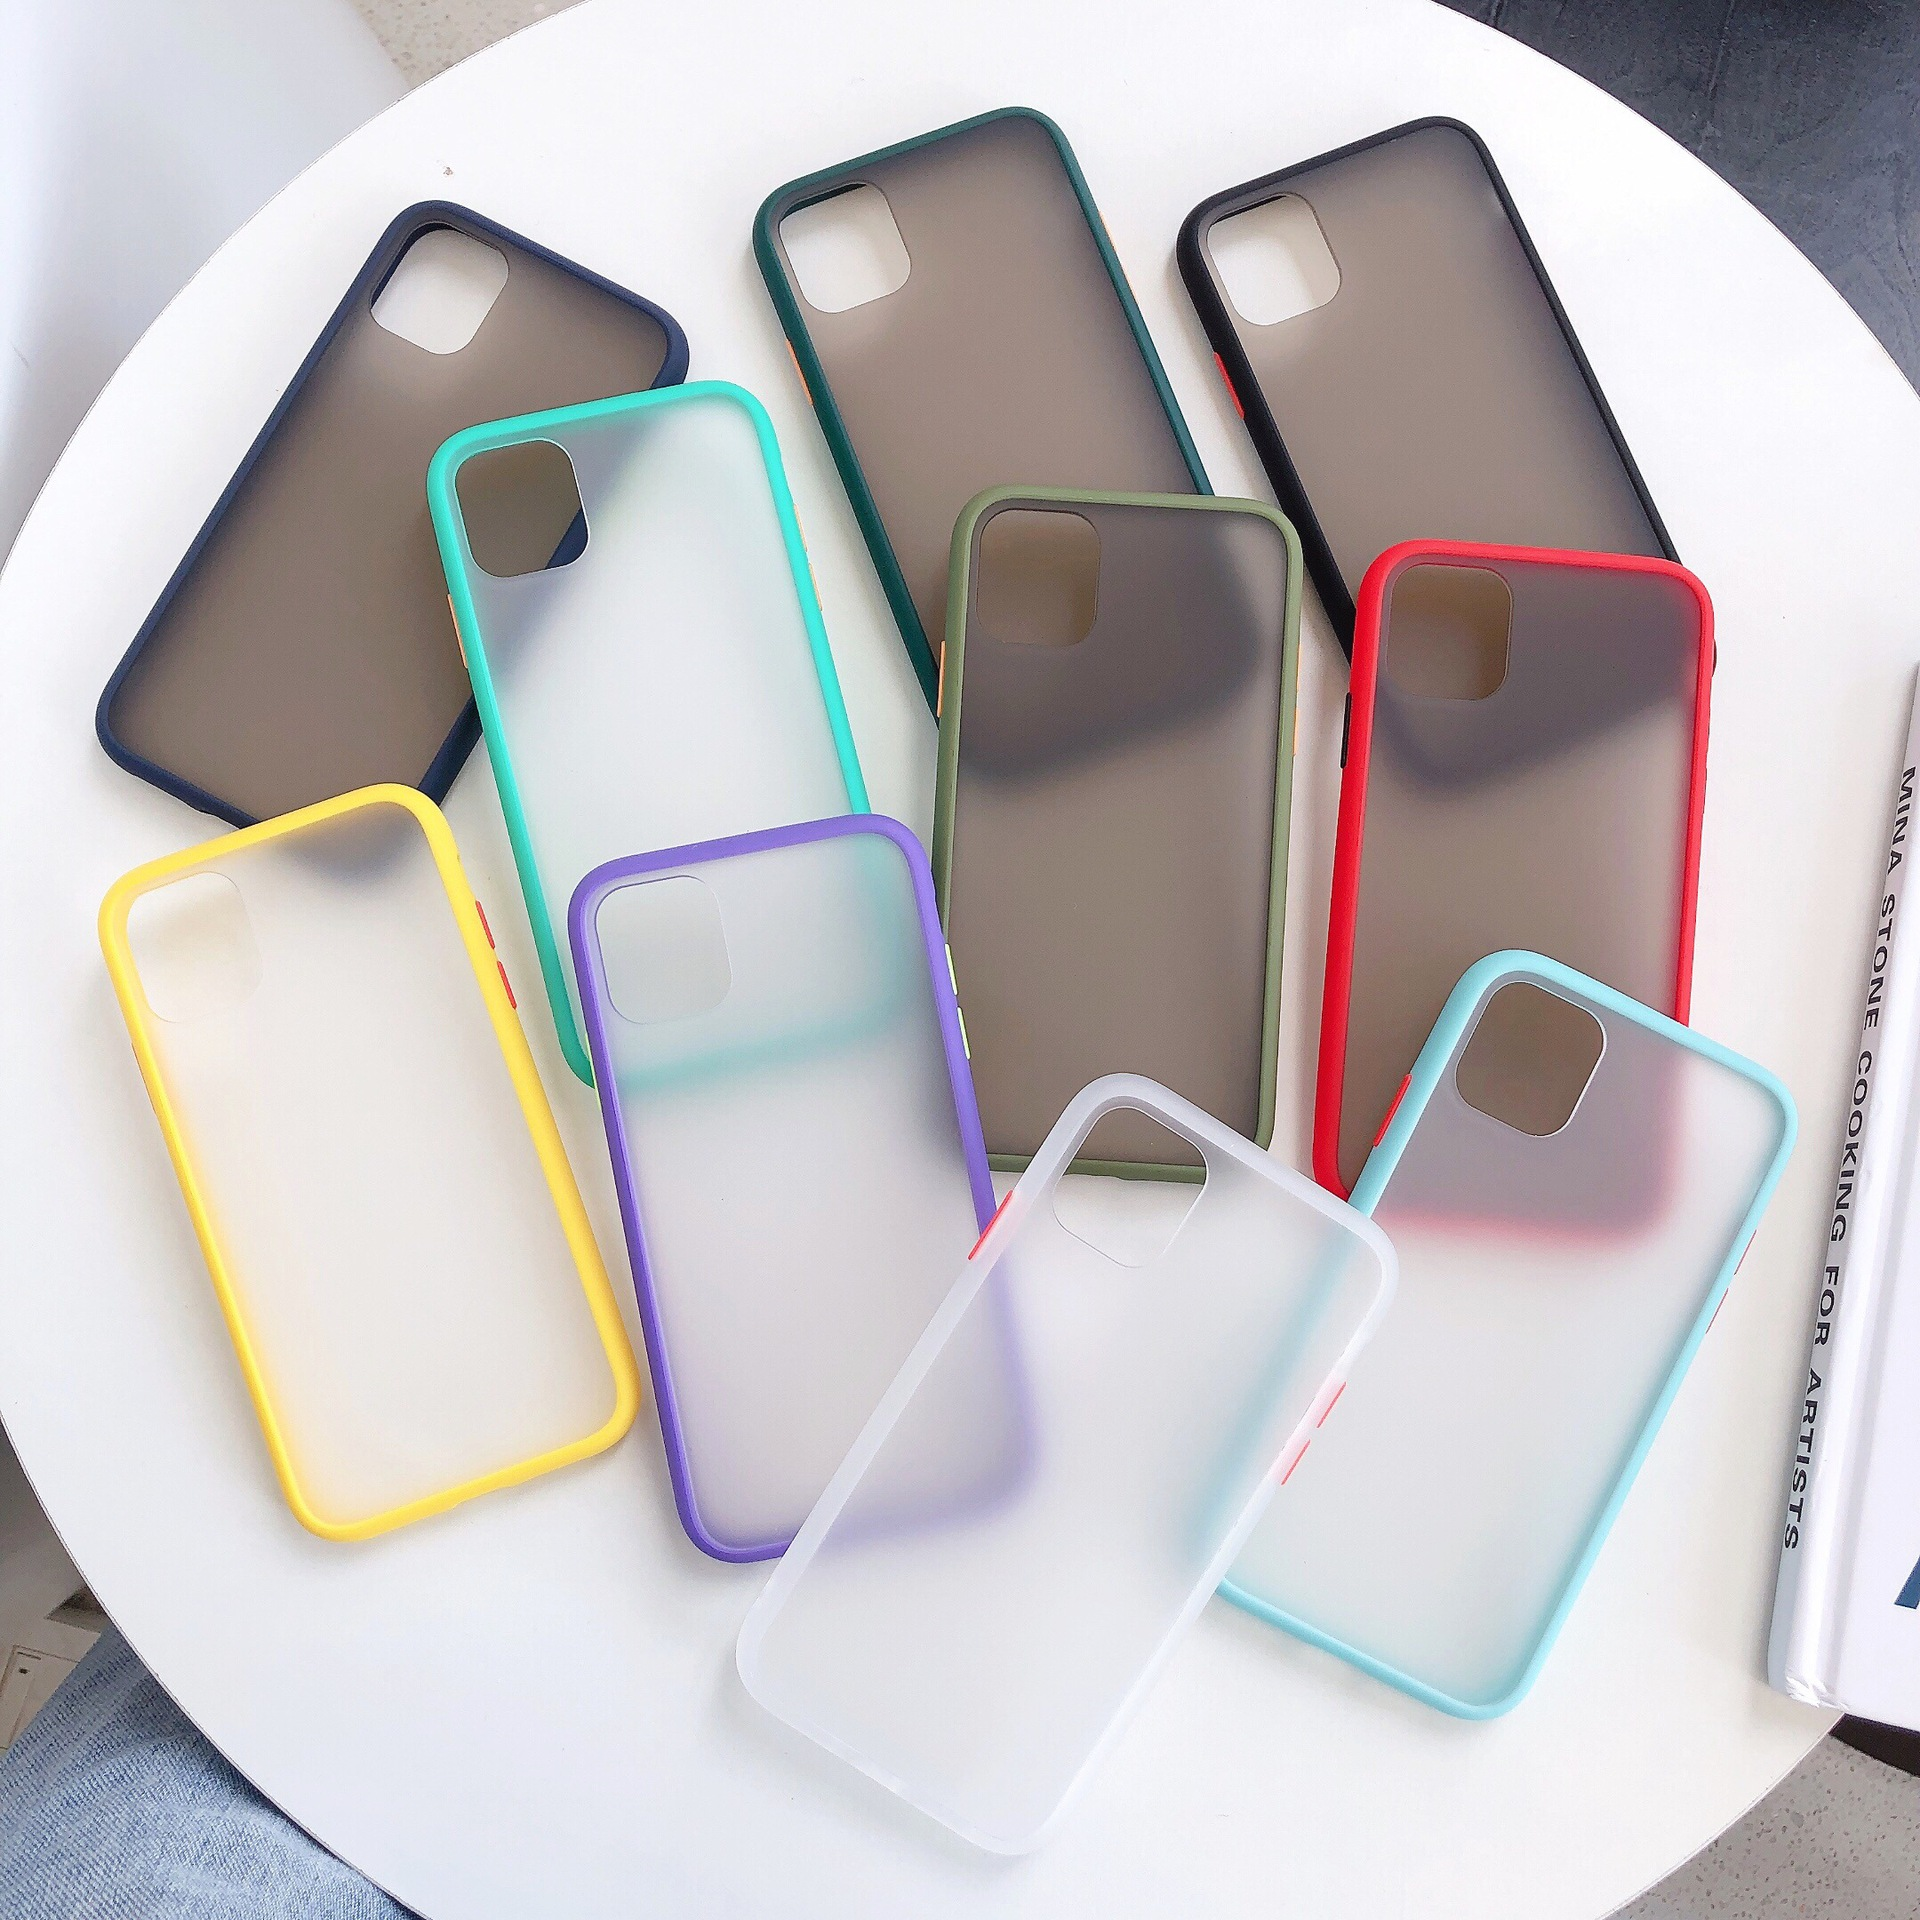 Matte PC and Shock-resistant TPU Edges Protective Phone Accessory Phone Case For iPhone 11 Pro Max